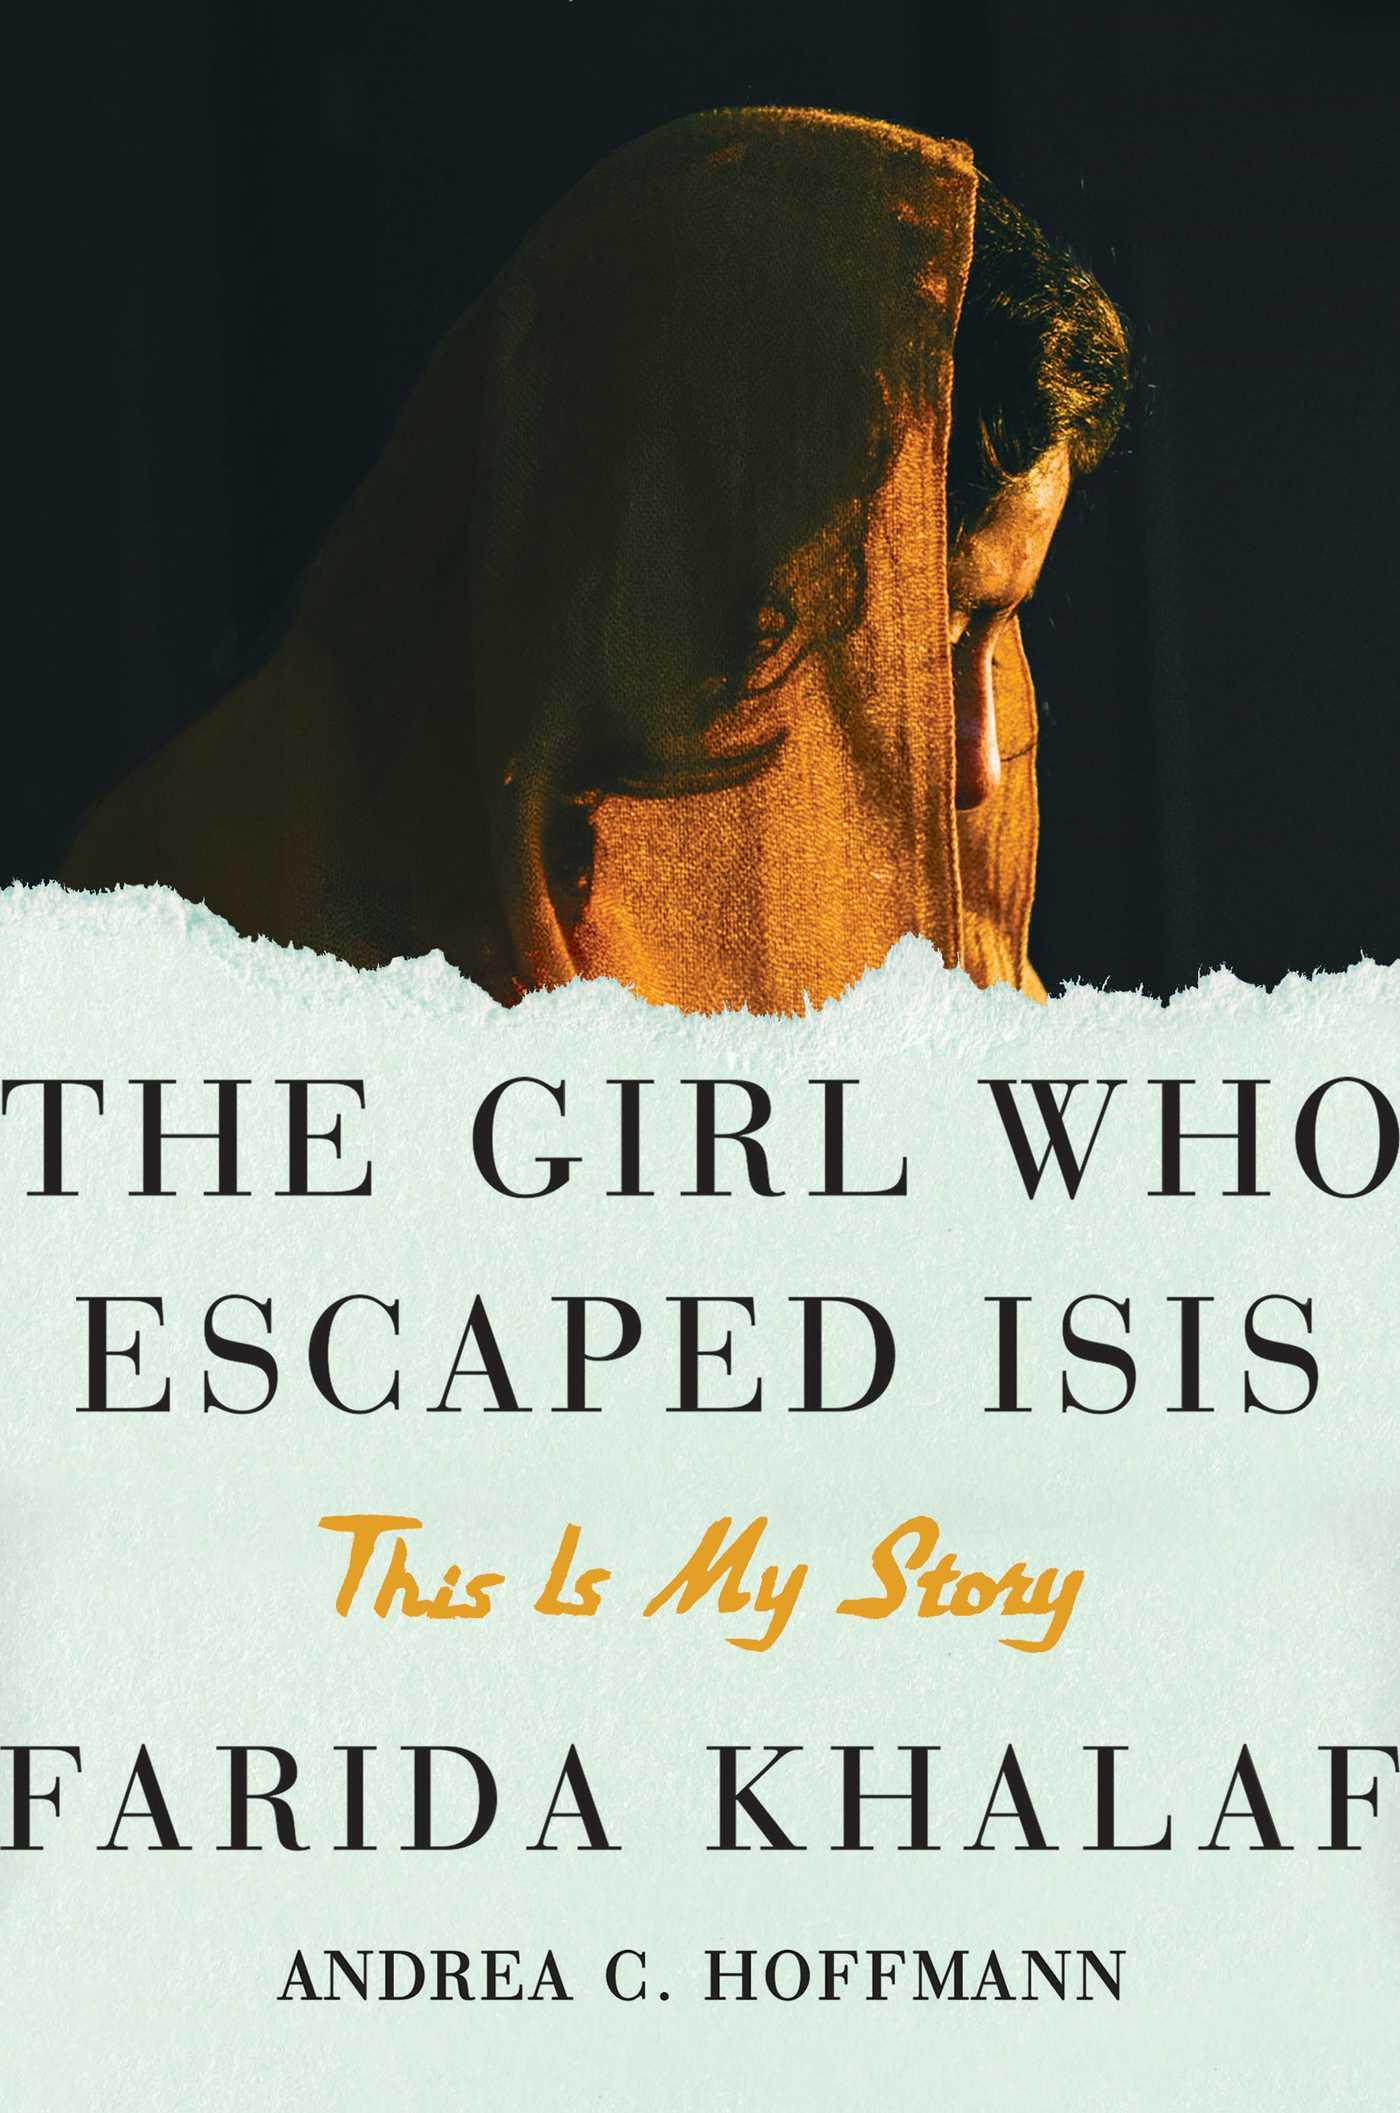 The girl who escaped isis 9781501131714 hr